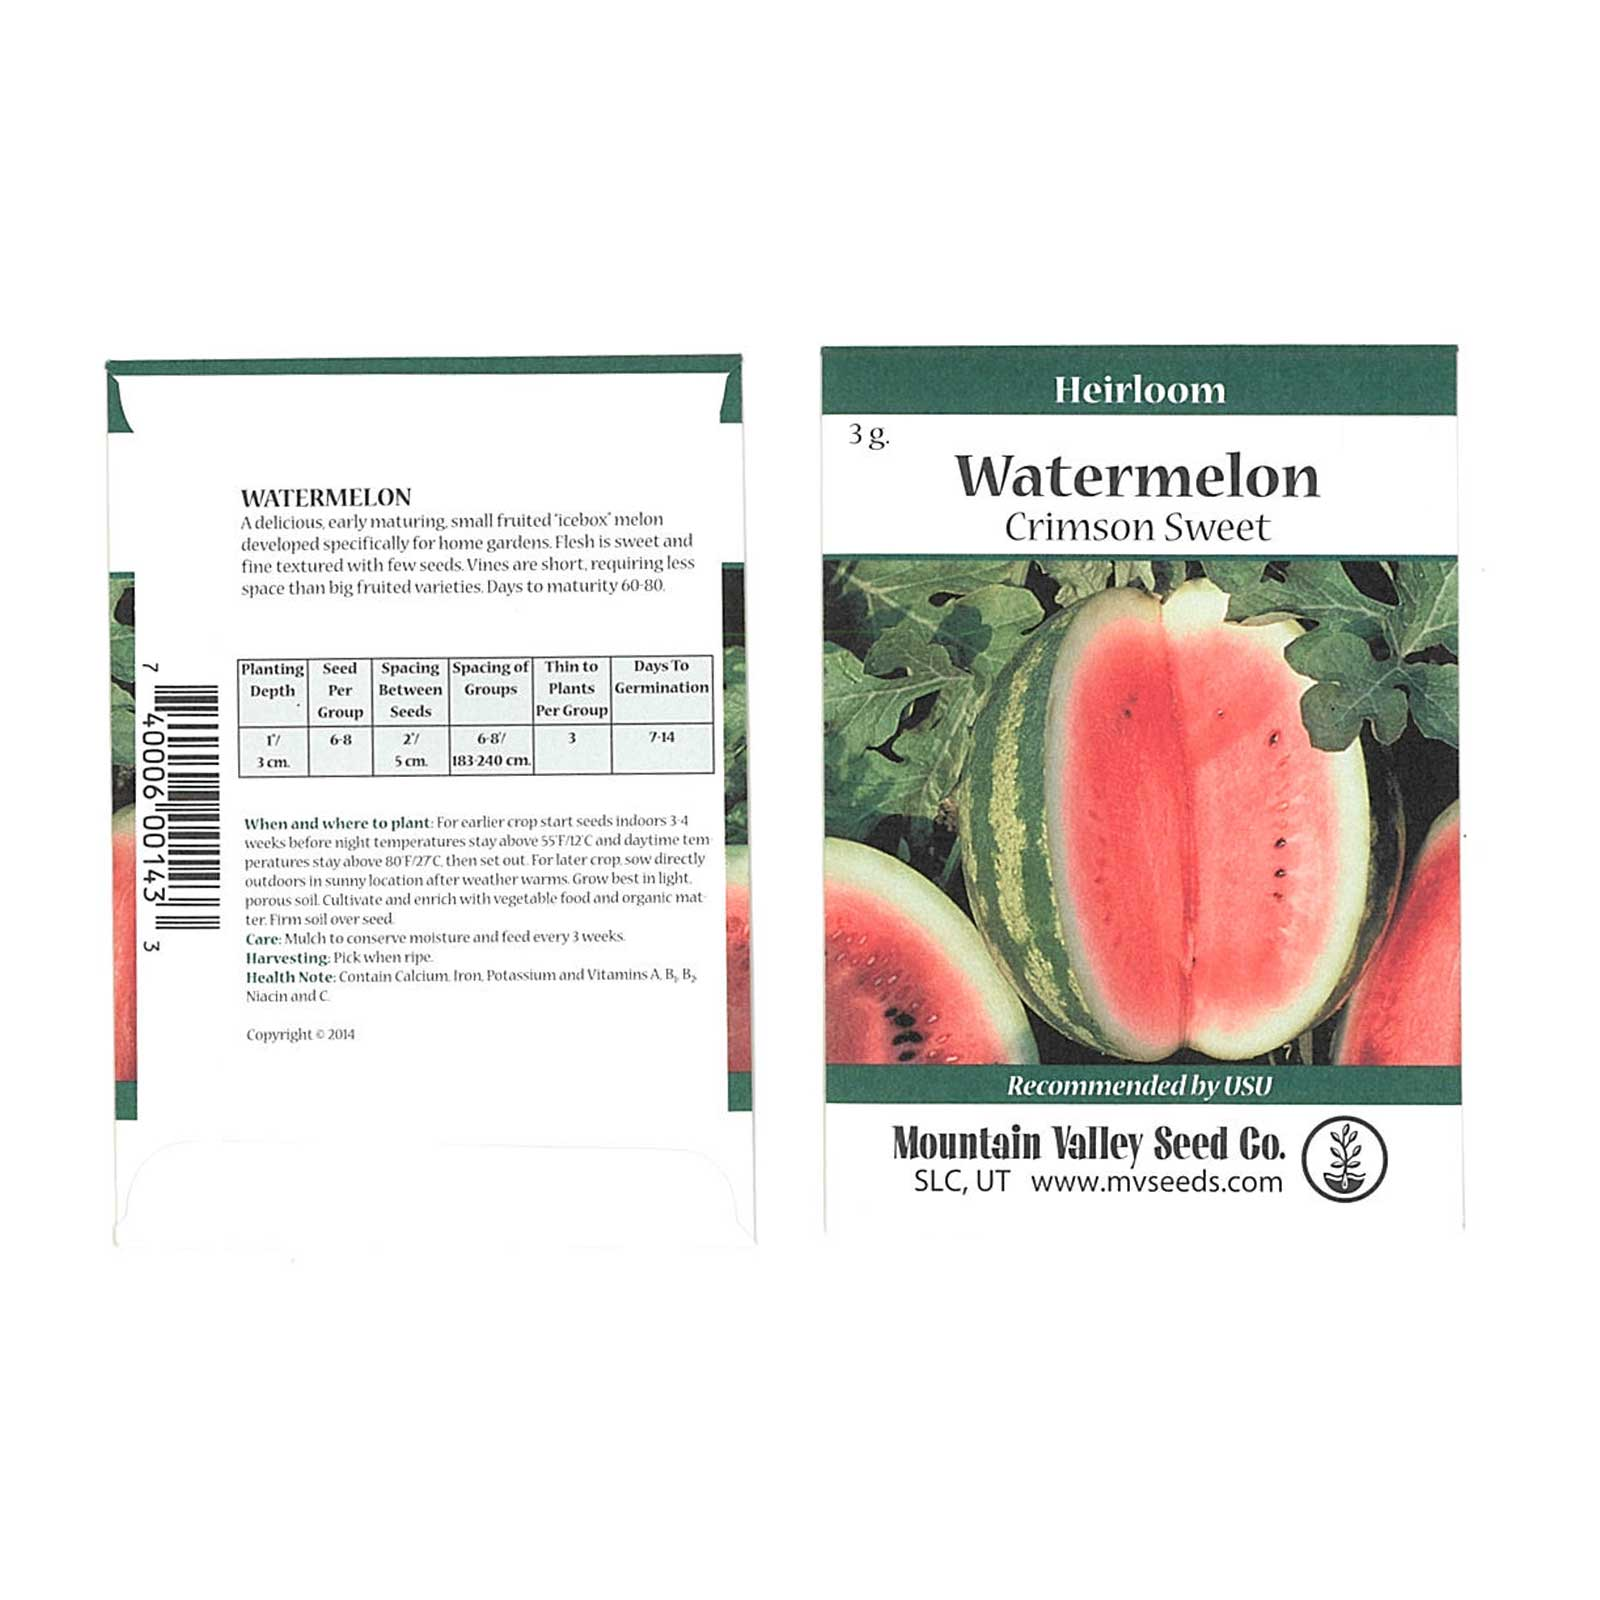 Watermelon Garden Seeds - Crimson Sweet - 3 g Packet - Non-GMO, Heirloom Vegetable Gardening Fruit Melon Seeds